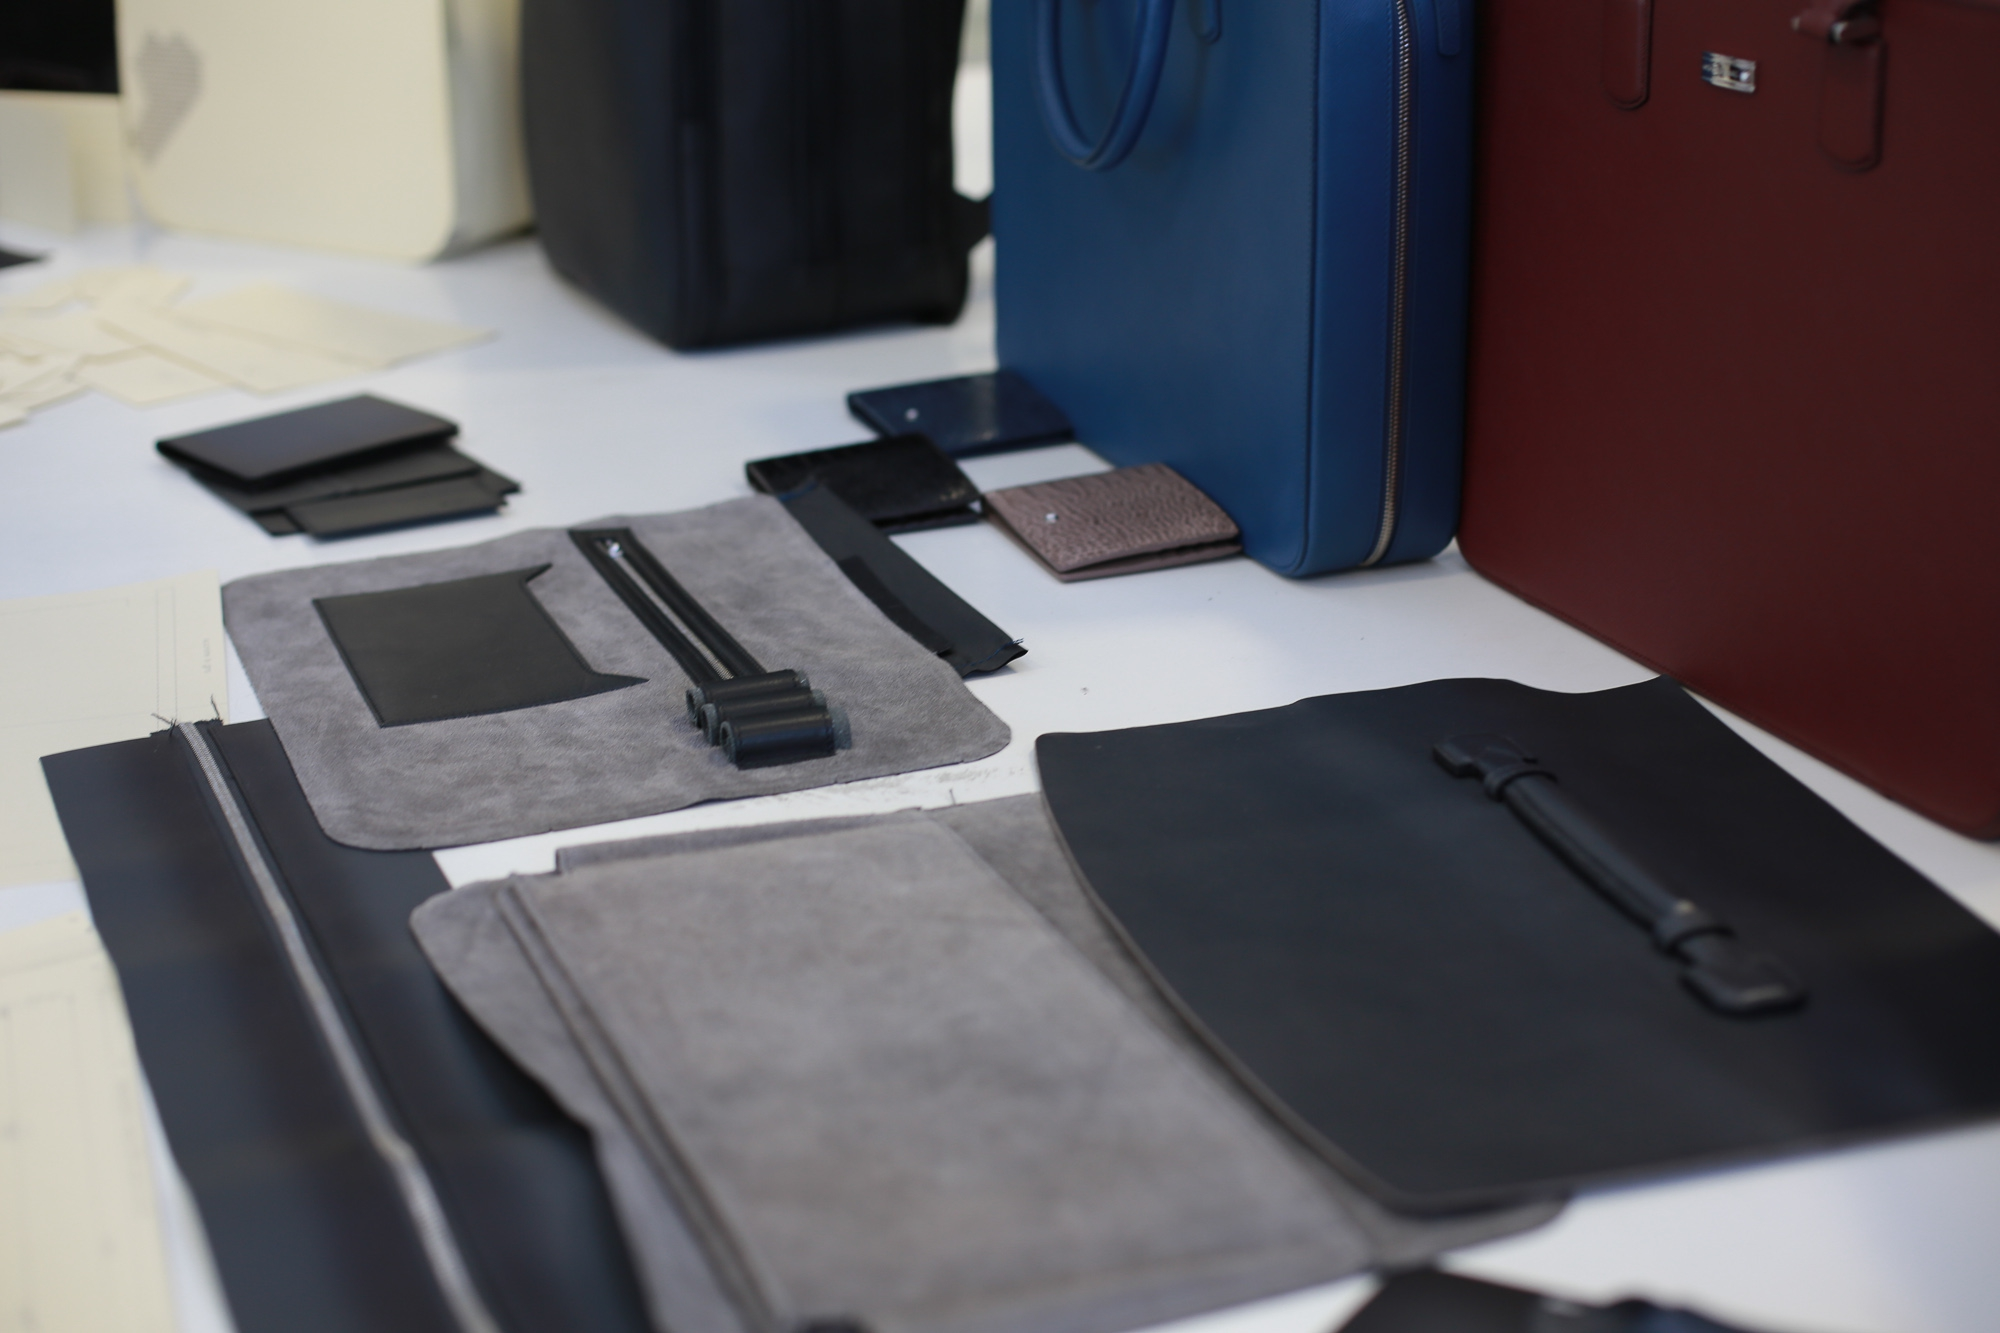 Montblanc: the Pelletteria A visit to the Scandicci leather goods atelier: where tests are at the avant-garde of technology